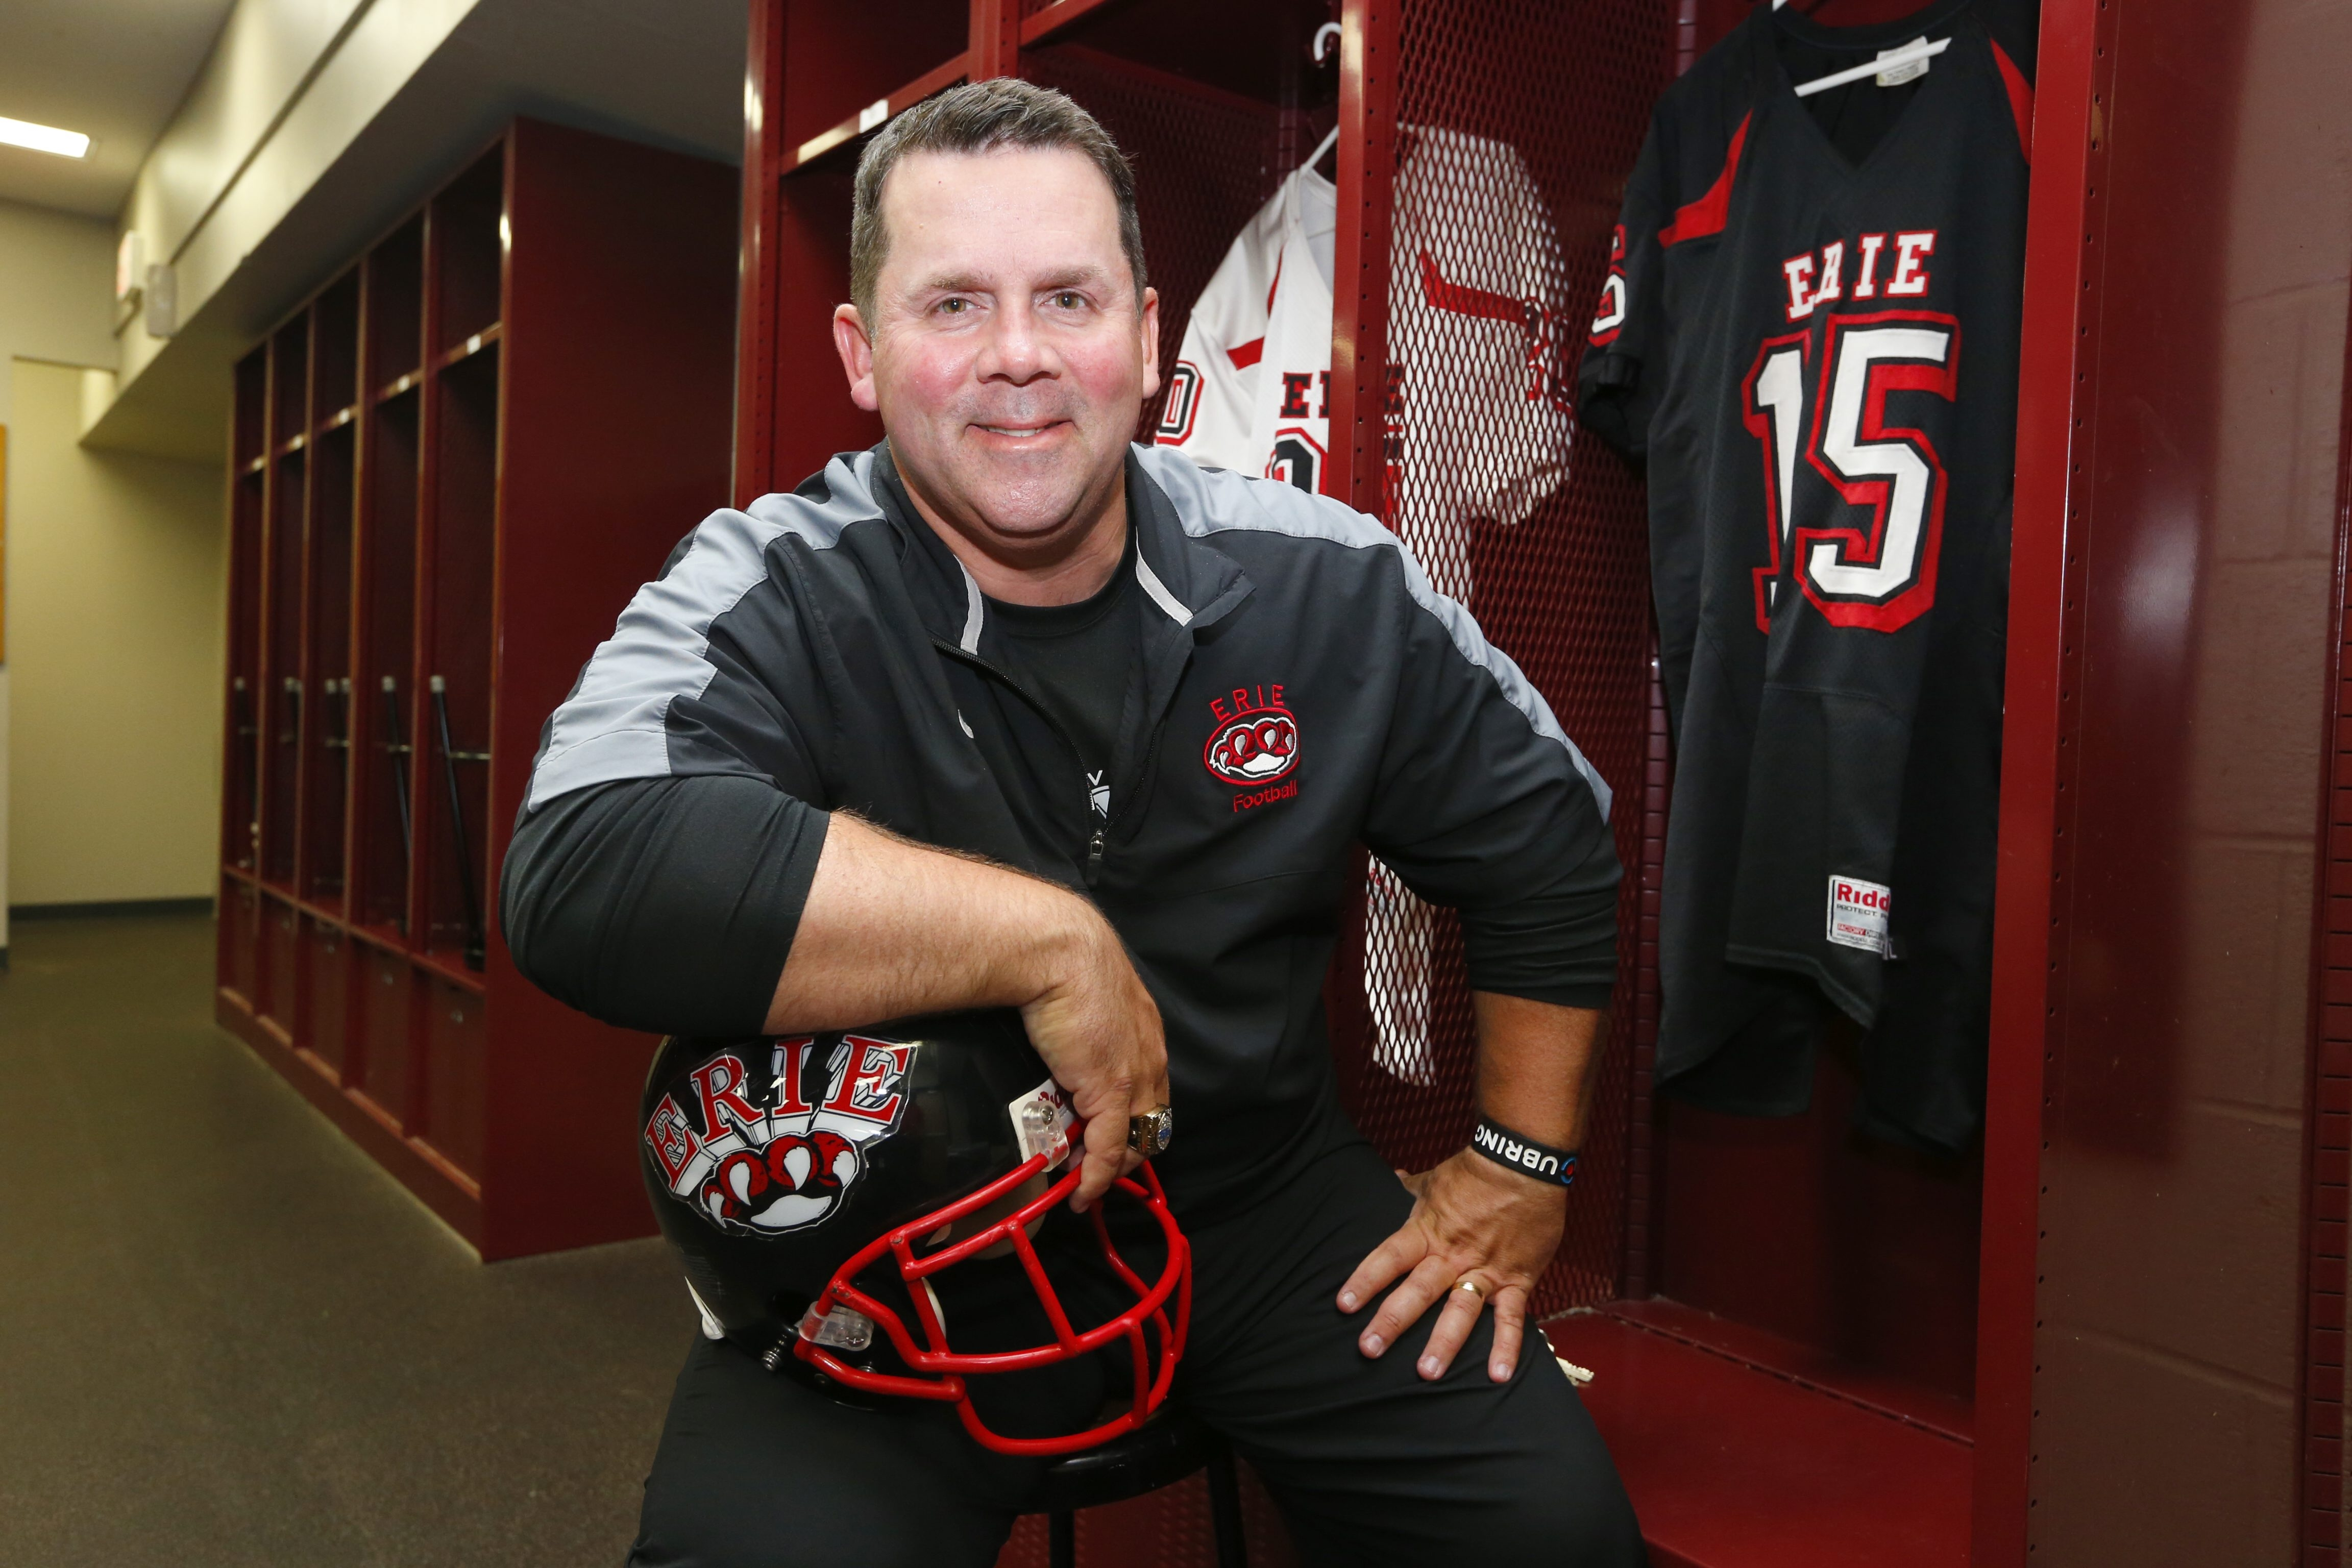 Scott Pilkey, who worked for eight years under UB coaches Turner Gill and Jeff Quinn, looks to build success as head coach at ECC.